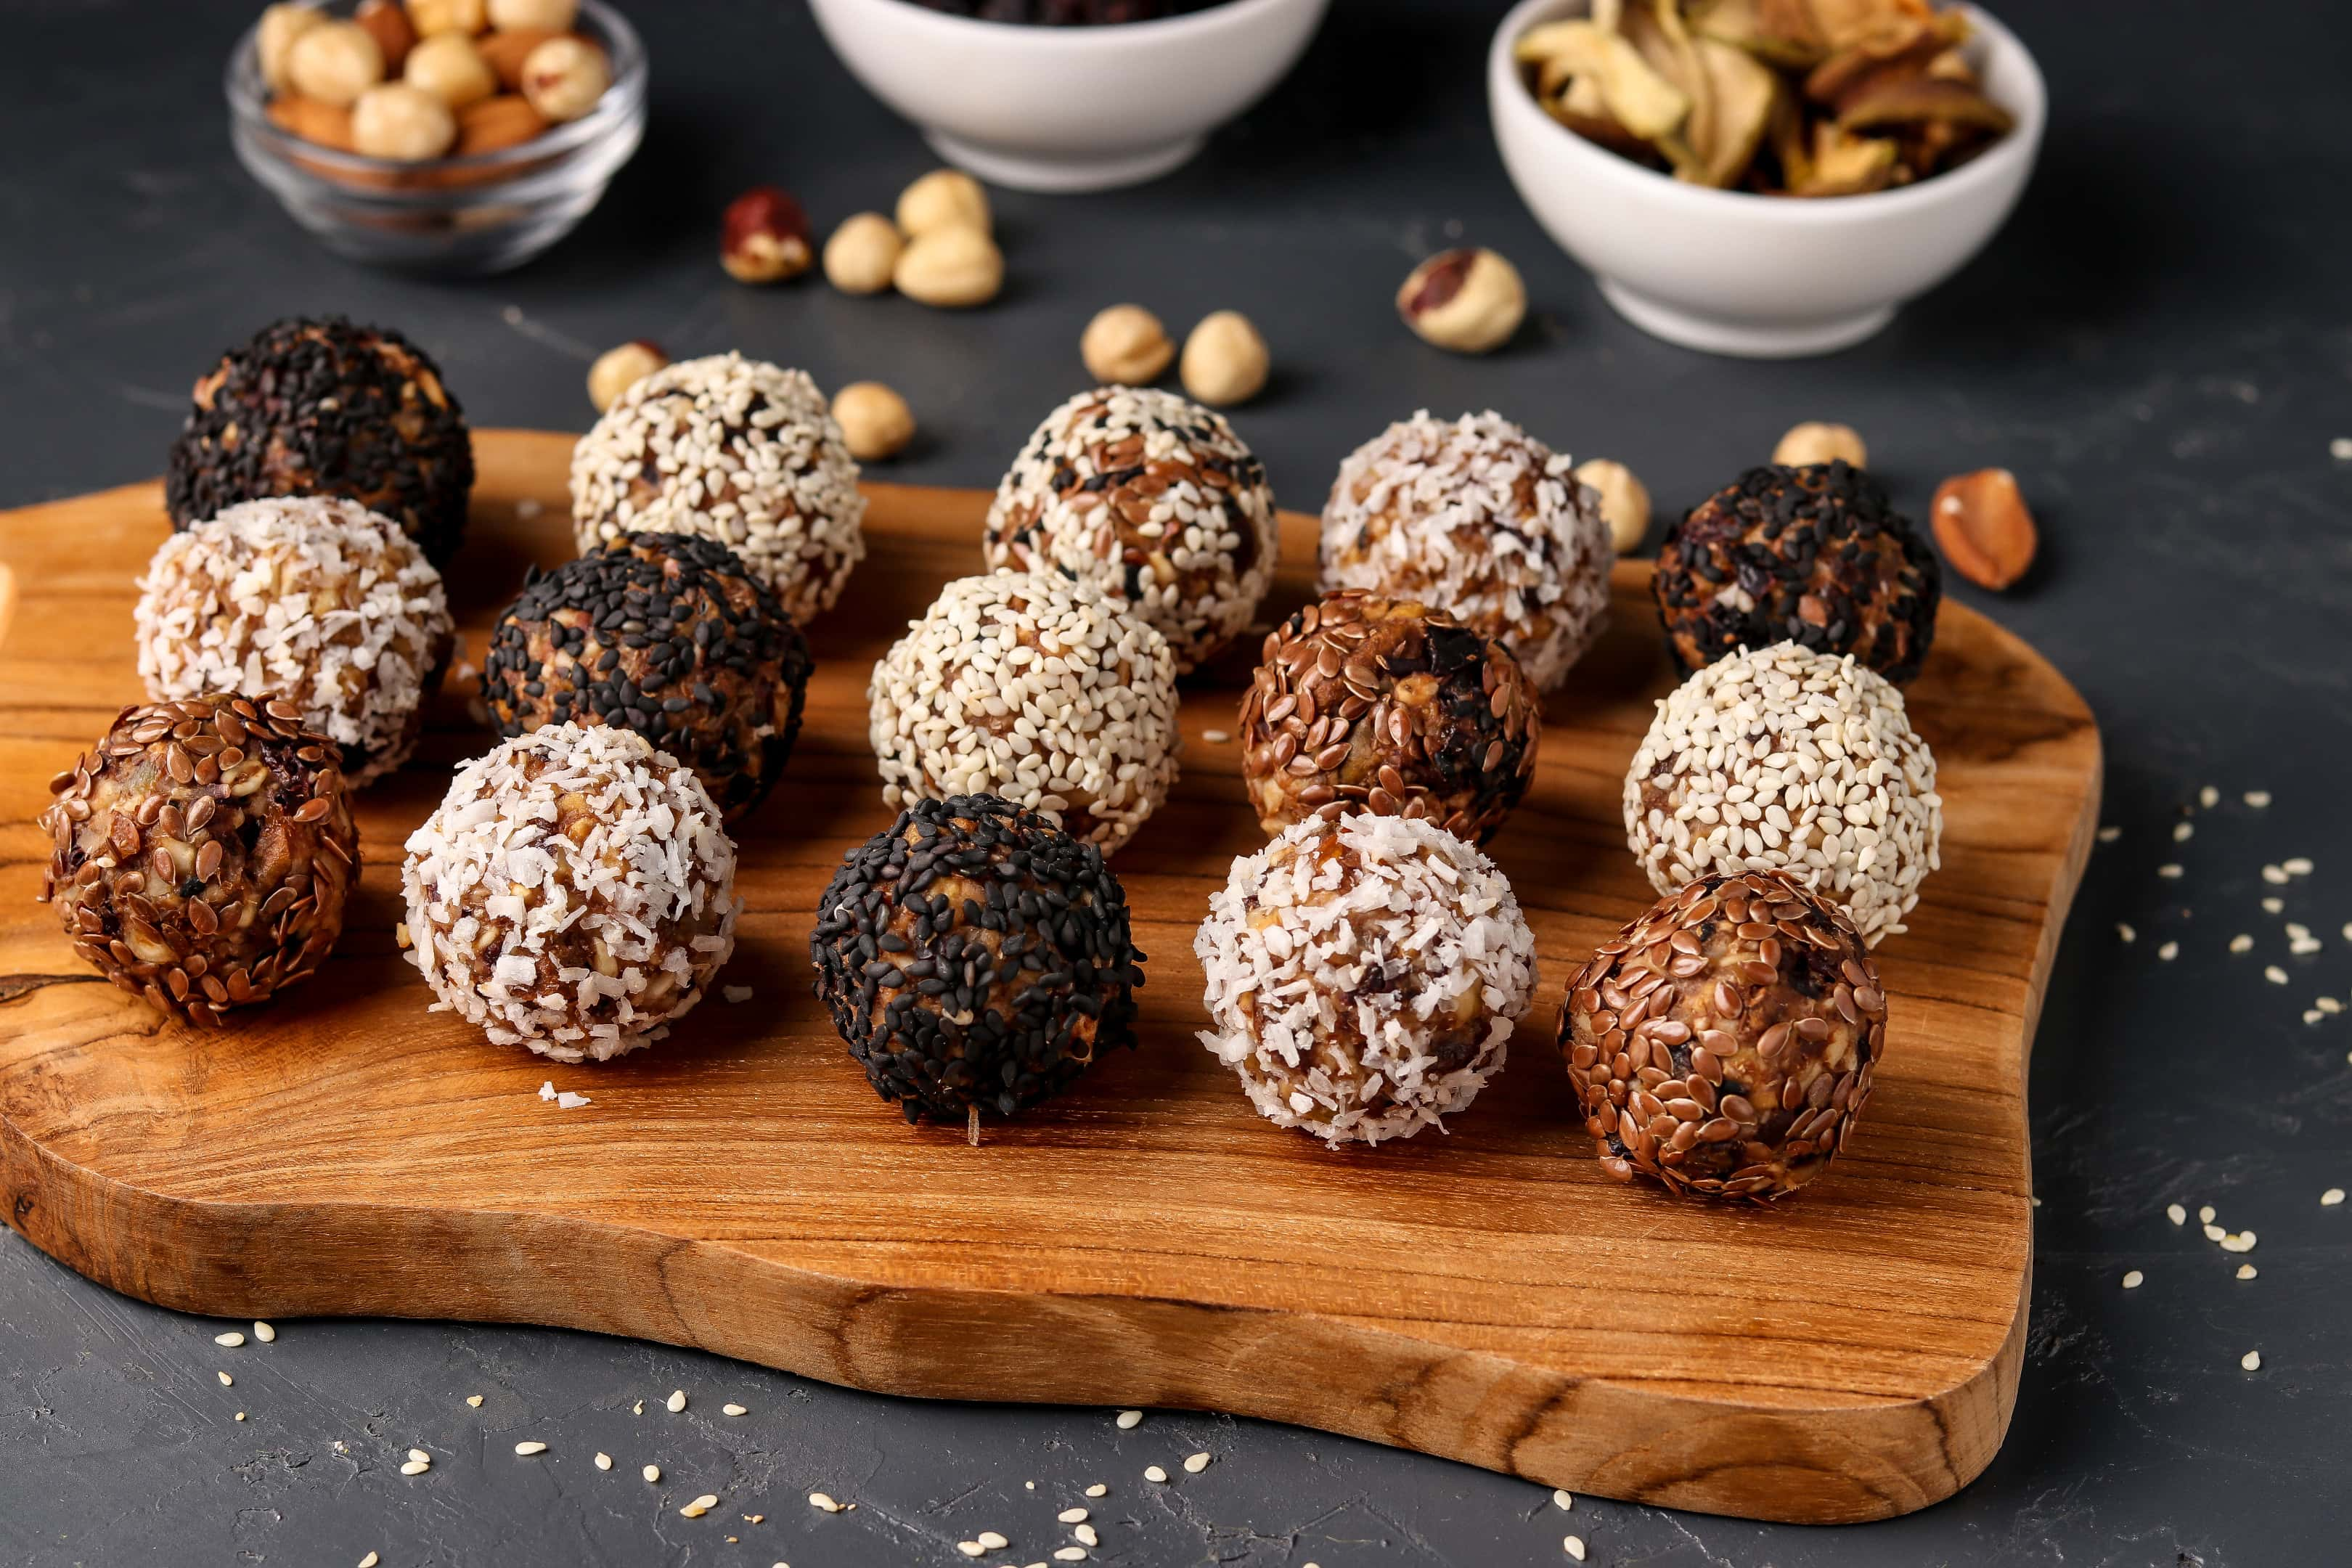 Energy balls with nuts oatmeal and dried fruit on wooden board